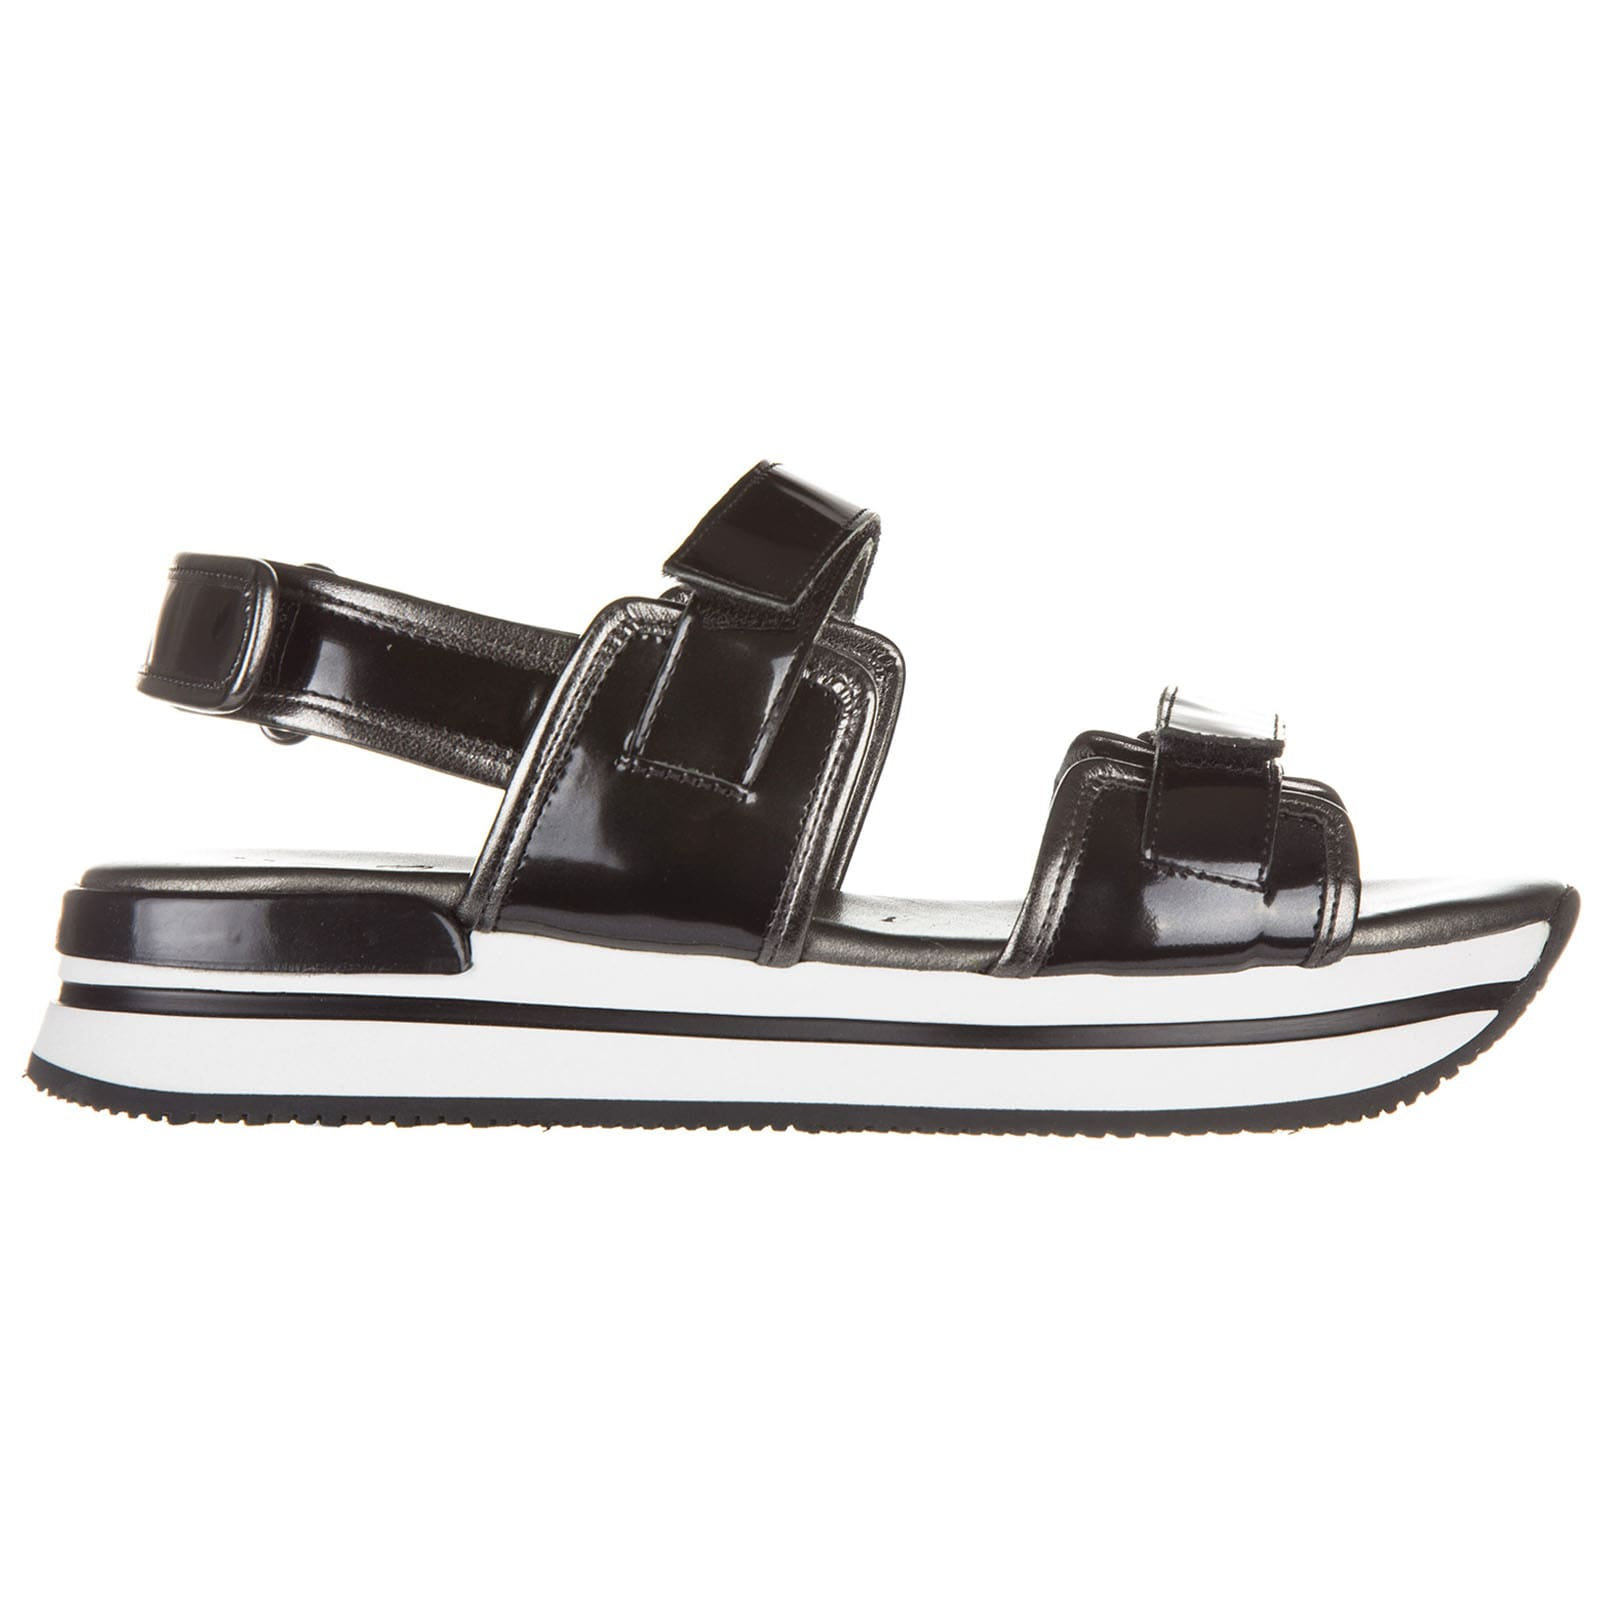 Hogan H222 Wedge Sandals